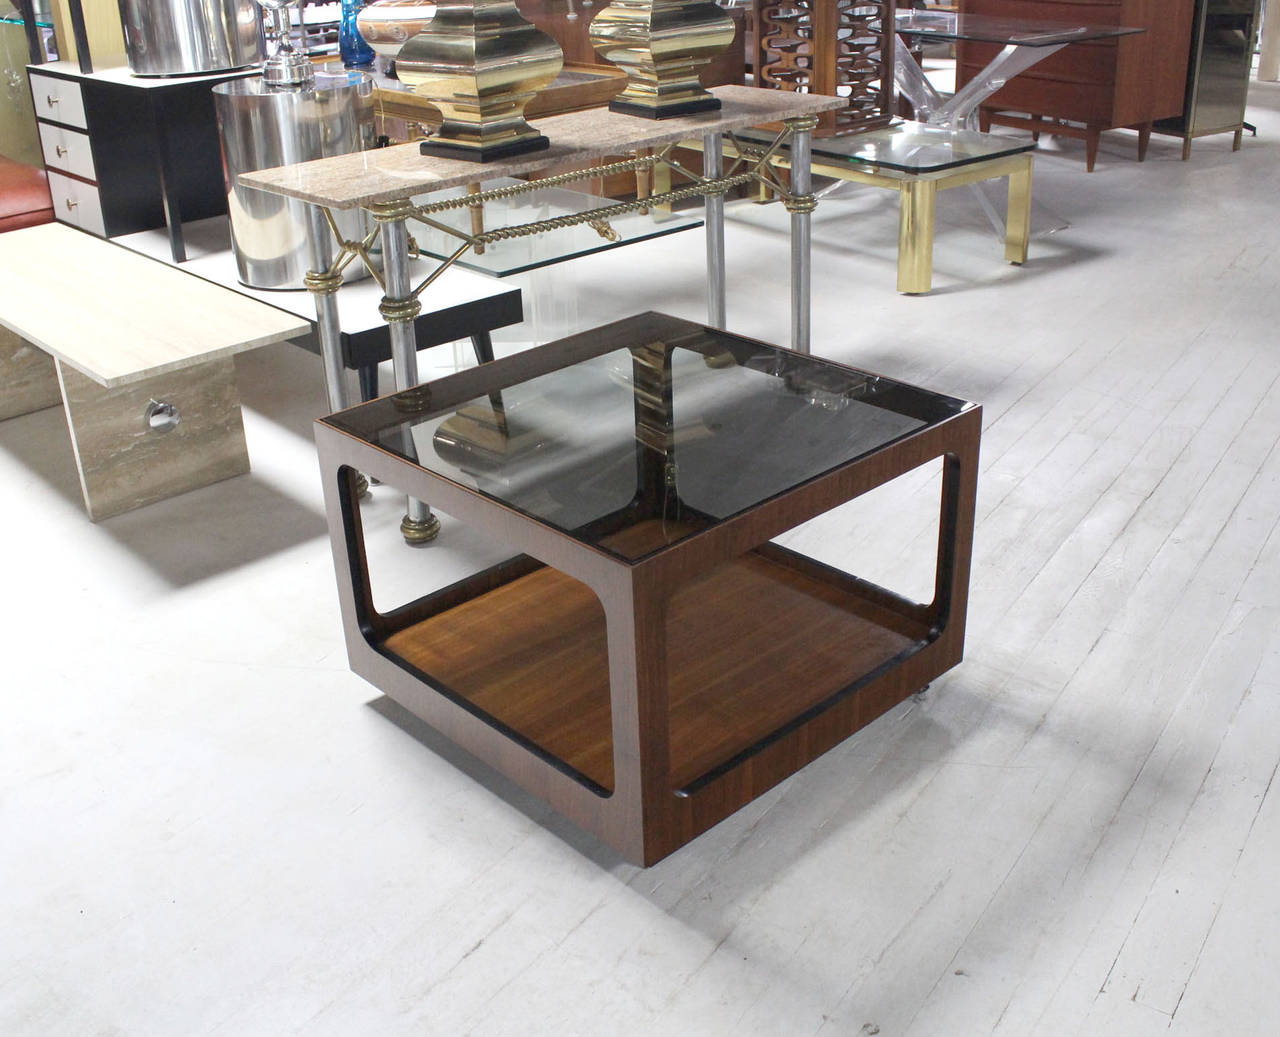 Danish mid-century modern square coffee or side table